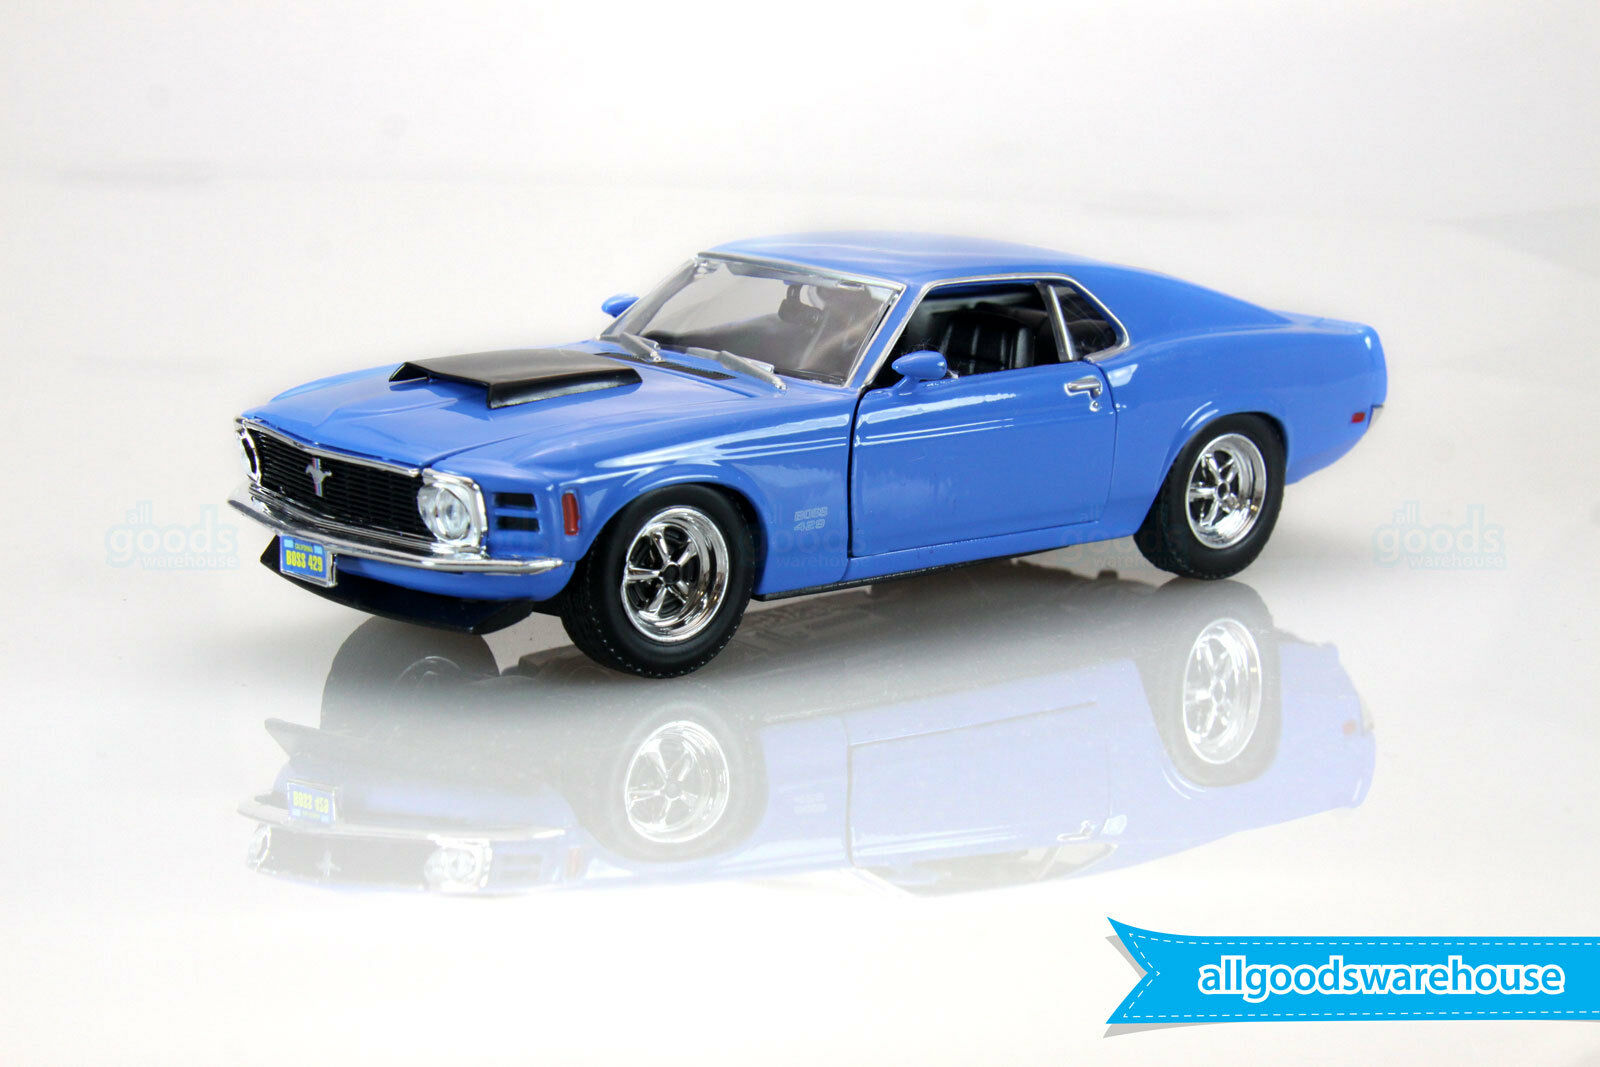 1970 Ford Mustang Boss 429 American Classic 1 24 scale die-cast model car